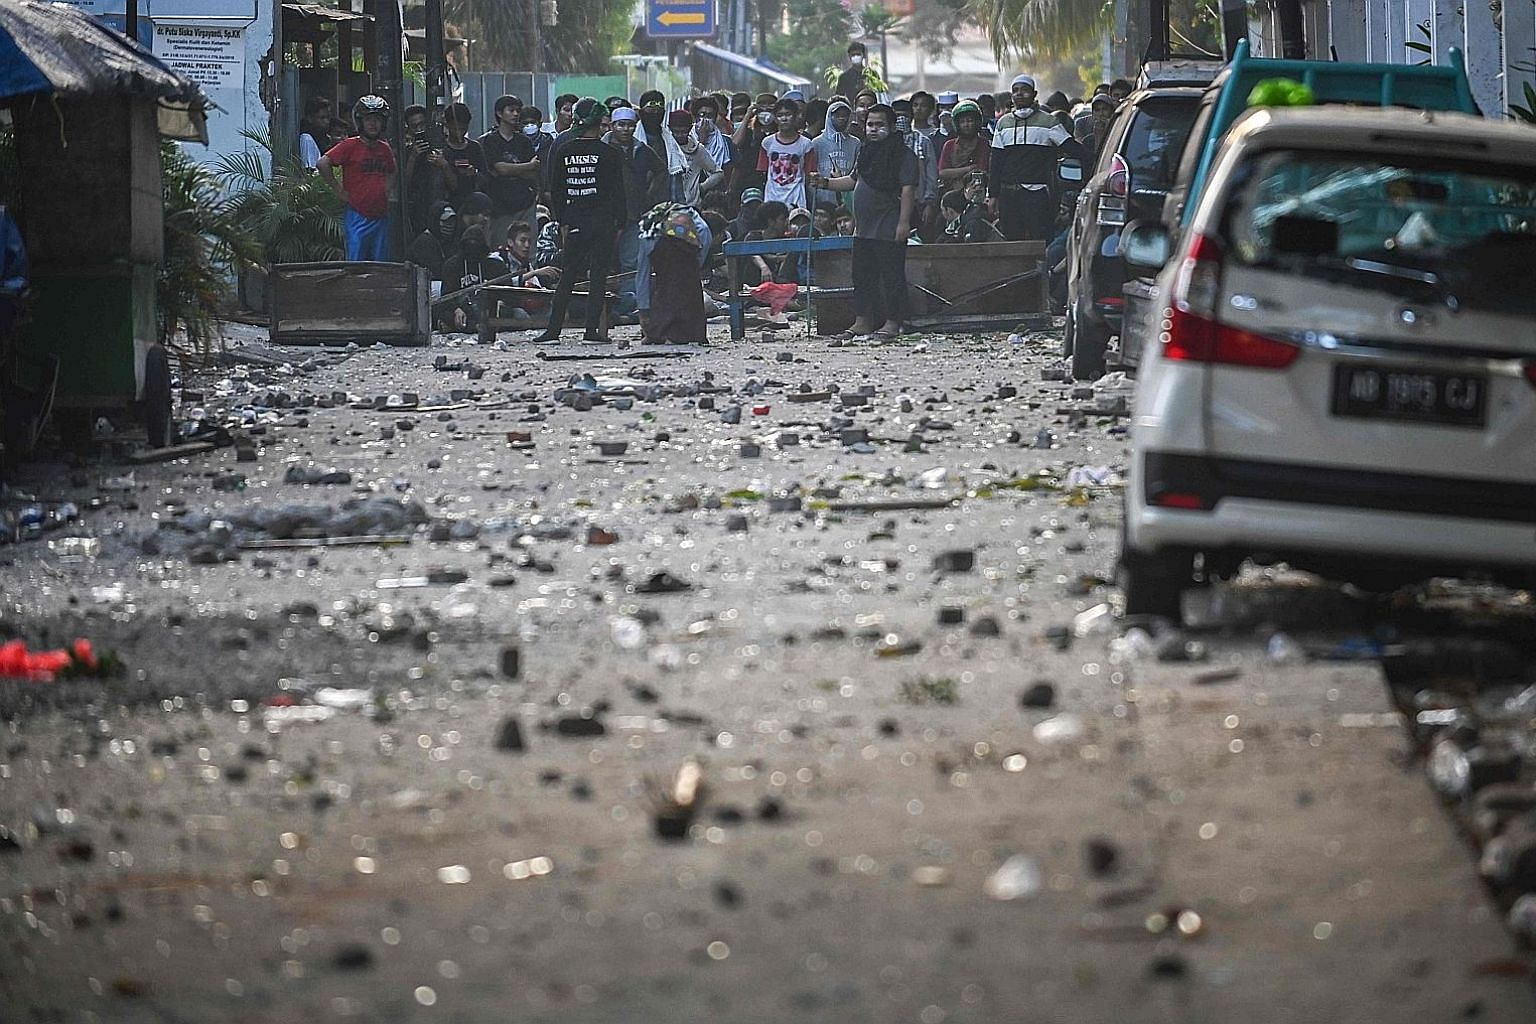 A mob seen in the background amid scattered rocks on the street during a violent overnight demonstration near the building housing the election supervisory agency Bawaslu in Jakarta last Wednesday. Riots in the capital claimed the lives of eight peop